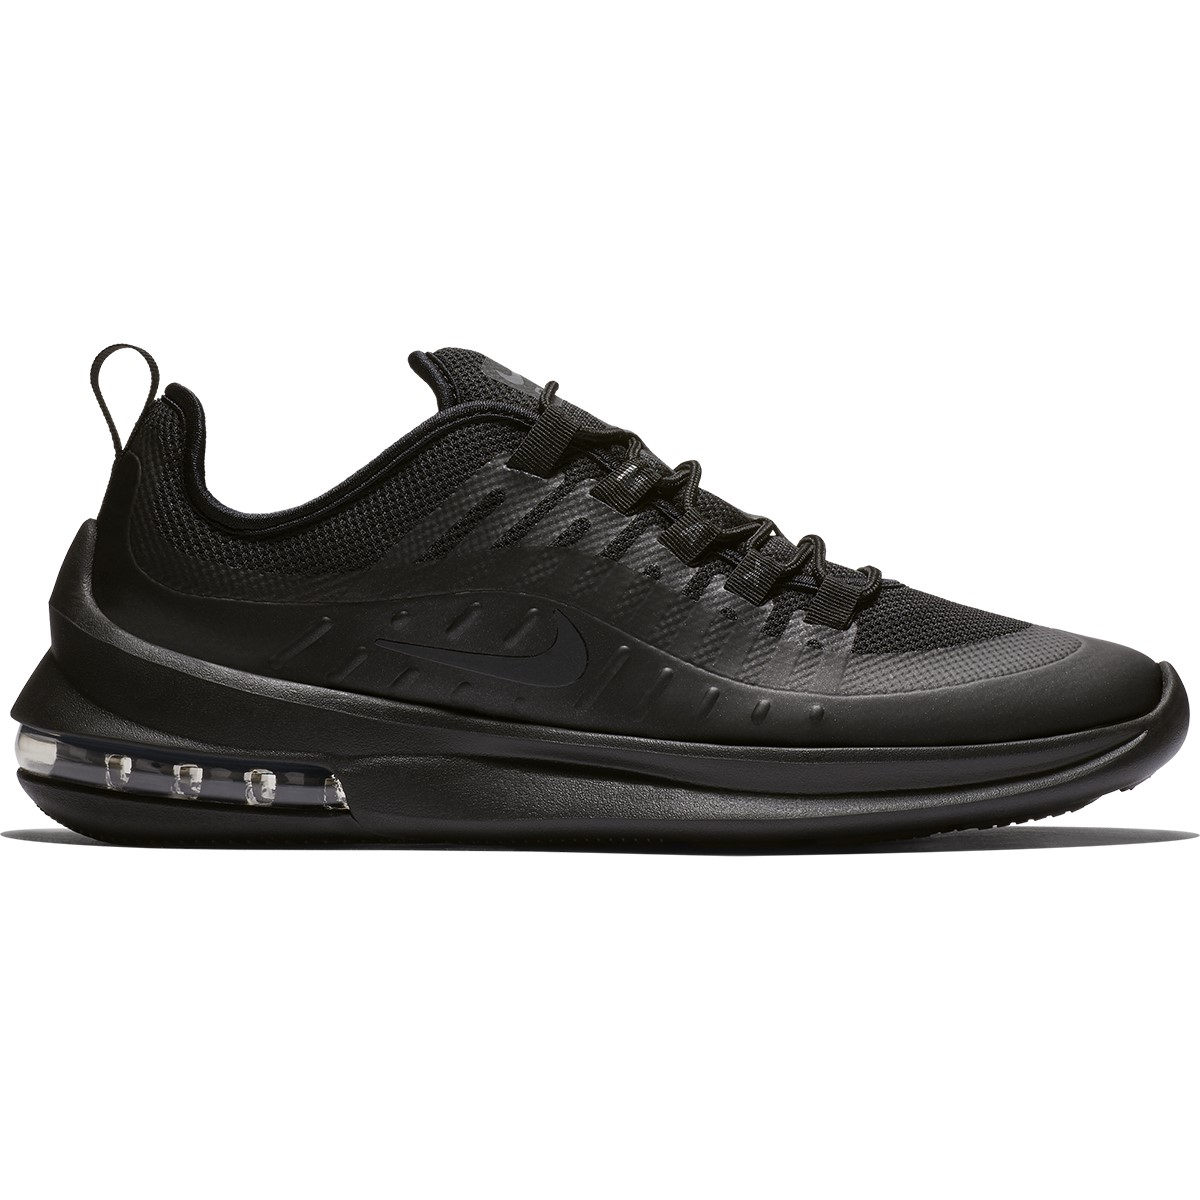 1c9b73cc252b Nike Air Max Axis - Mens Casual Shoes - Black Anthracite Online ...